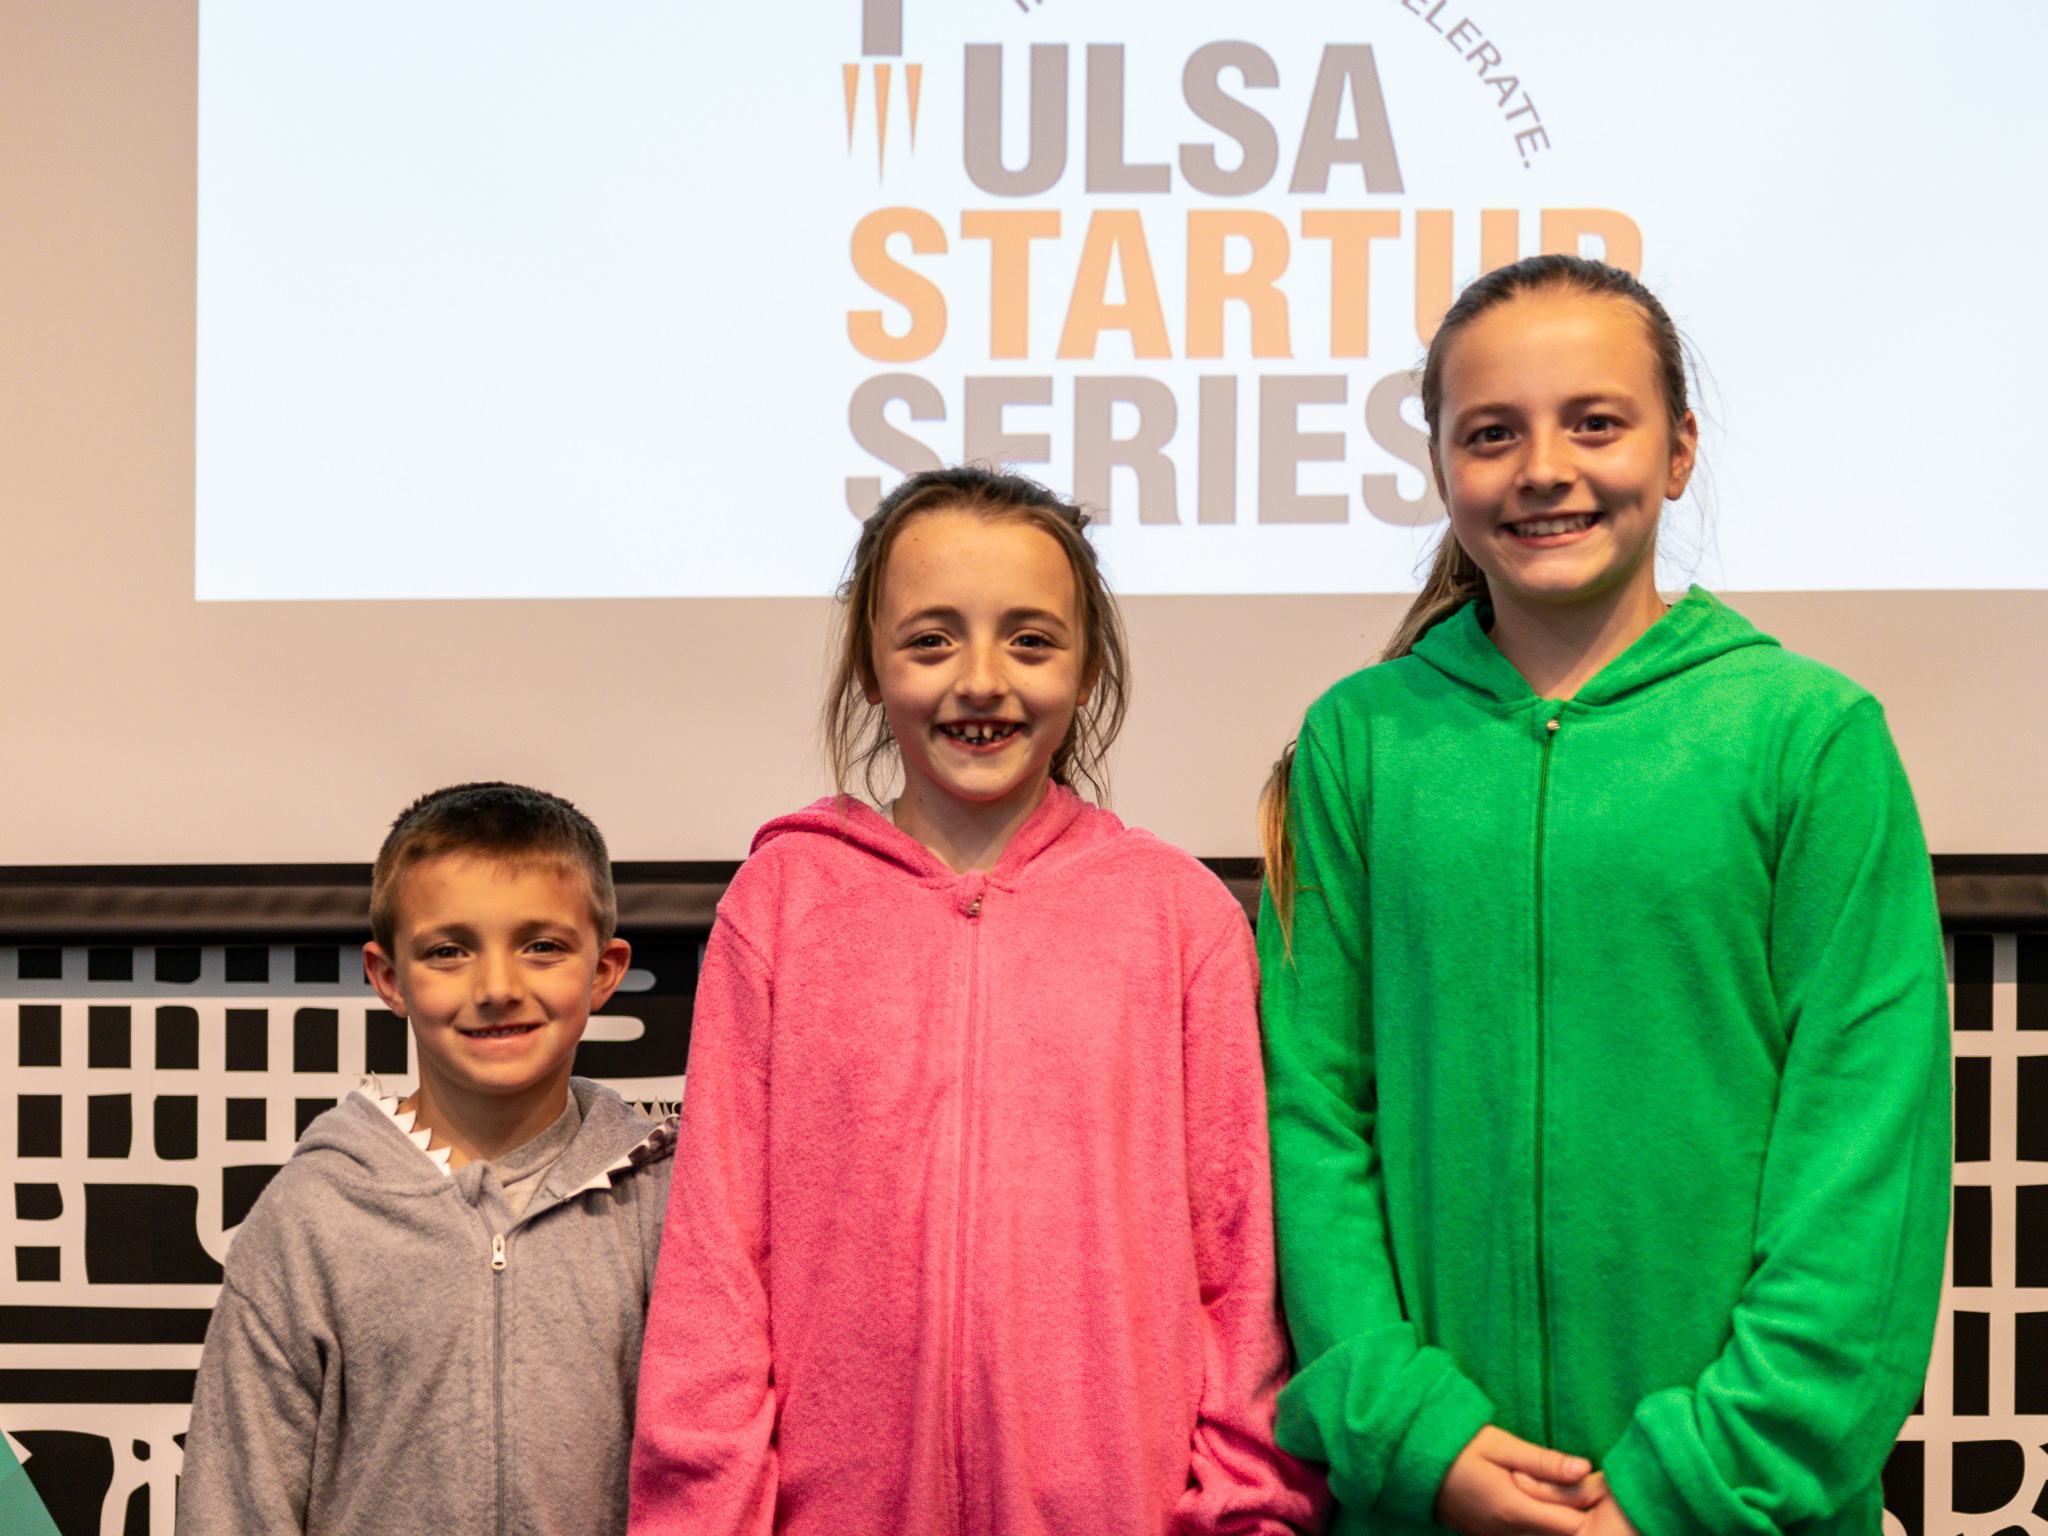 """The children of Angie Myers, founder of My """"Buddy"""" Towel, model the product at the Tulsa Startup Series Live Pitch."""